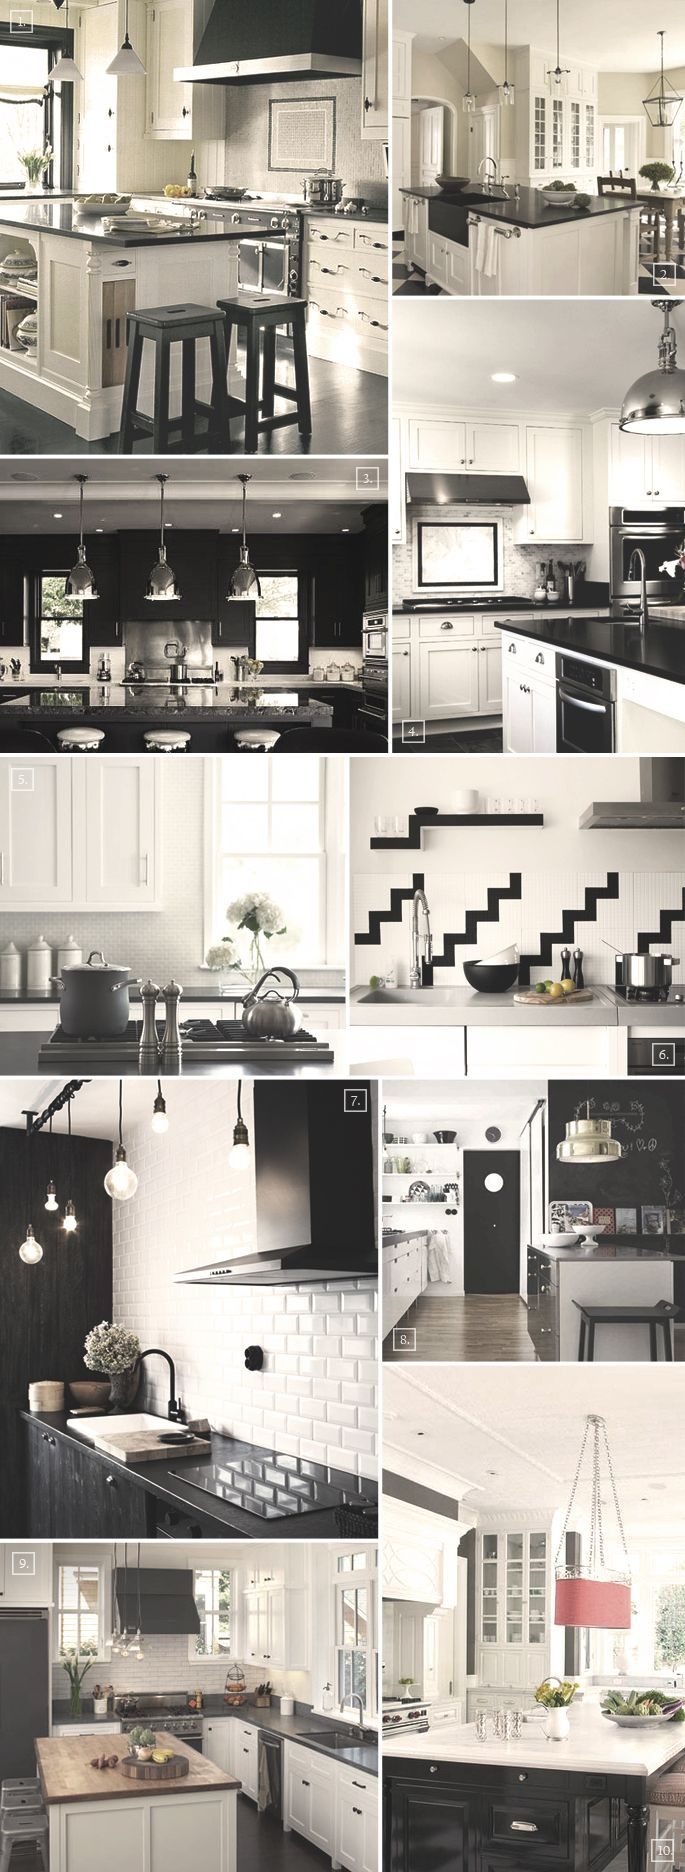 White Kitchens 17 Best Ideas About White Kitchen Designs On Pinterest White Diy